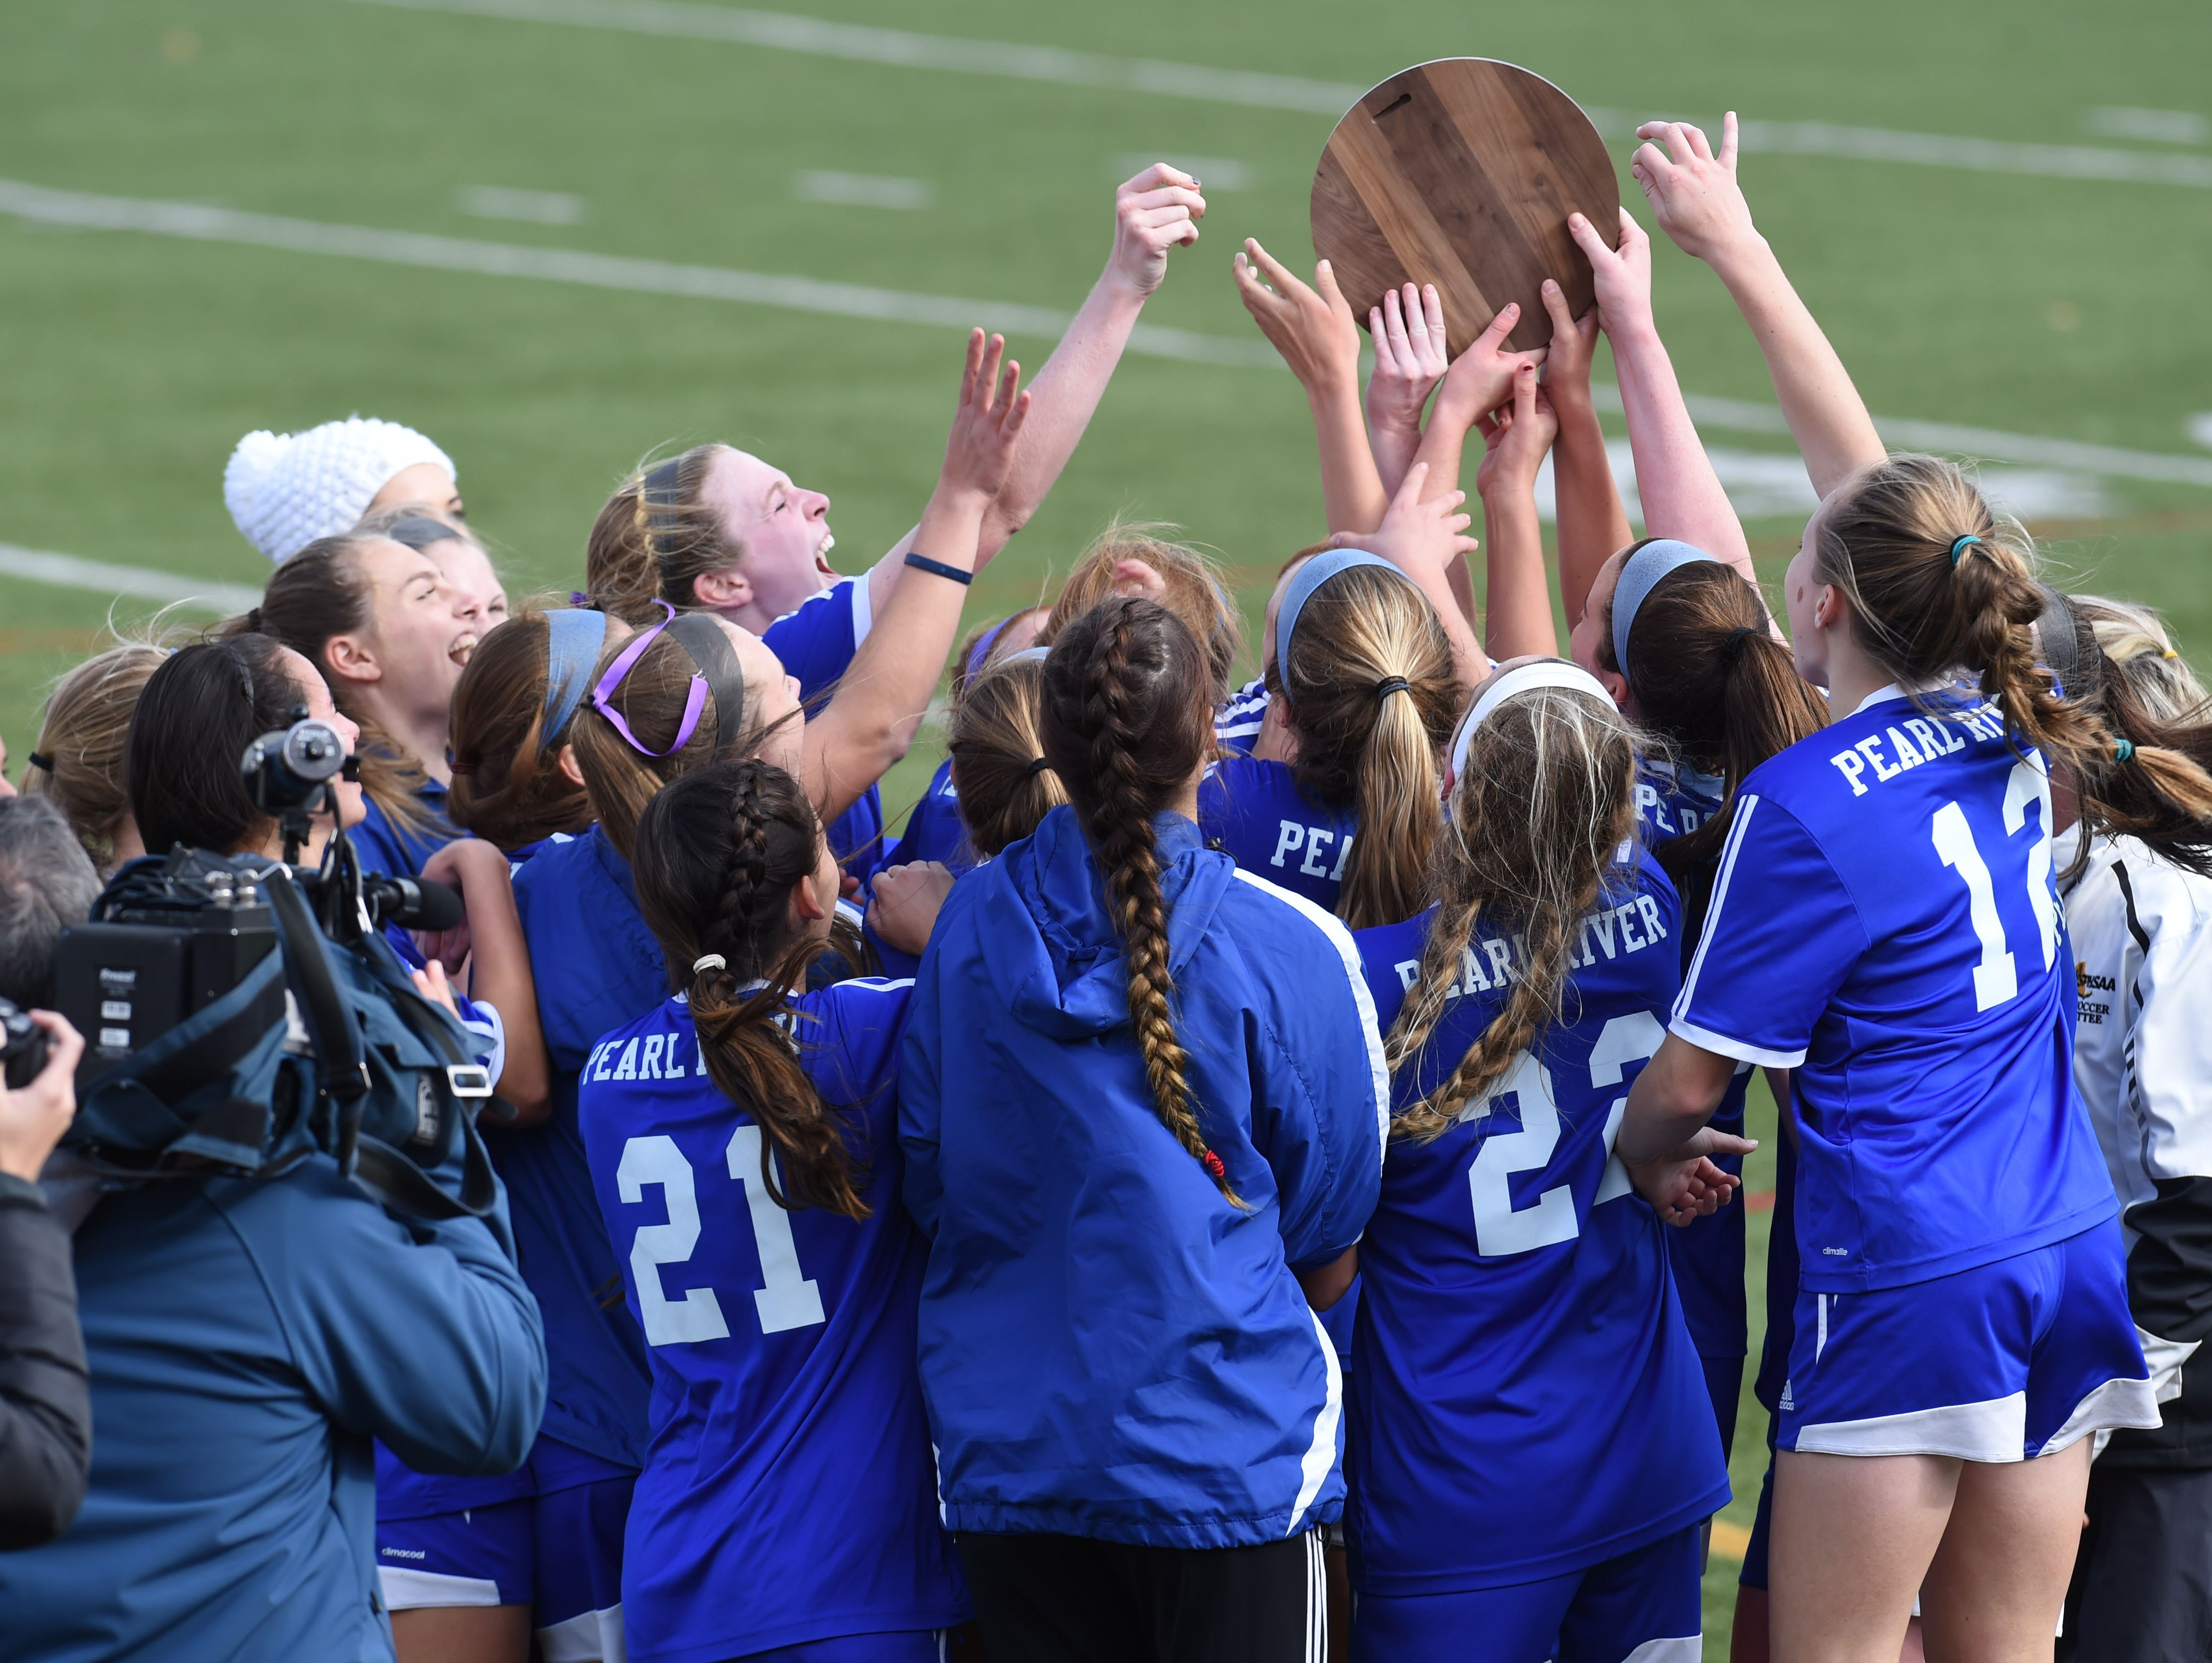 The Pearl River girls soccer team celebrates after winning the Class A regional final against Goshen.